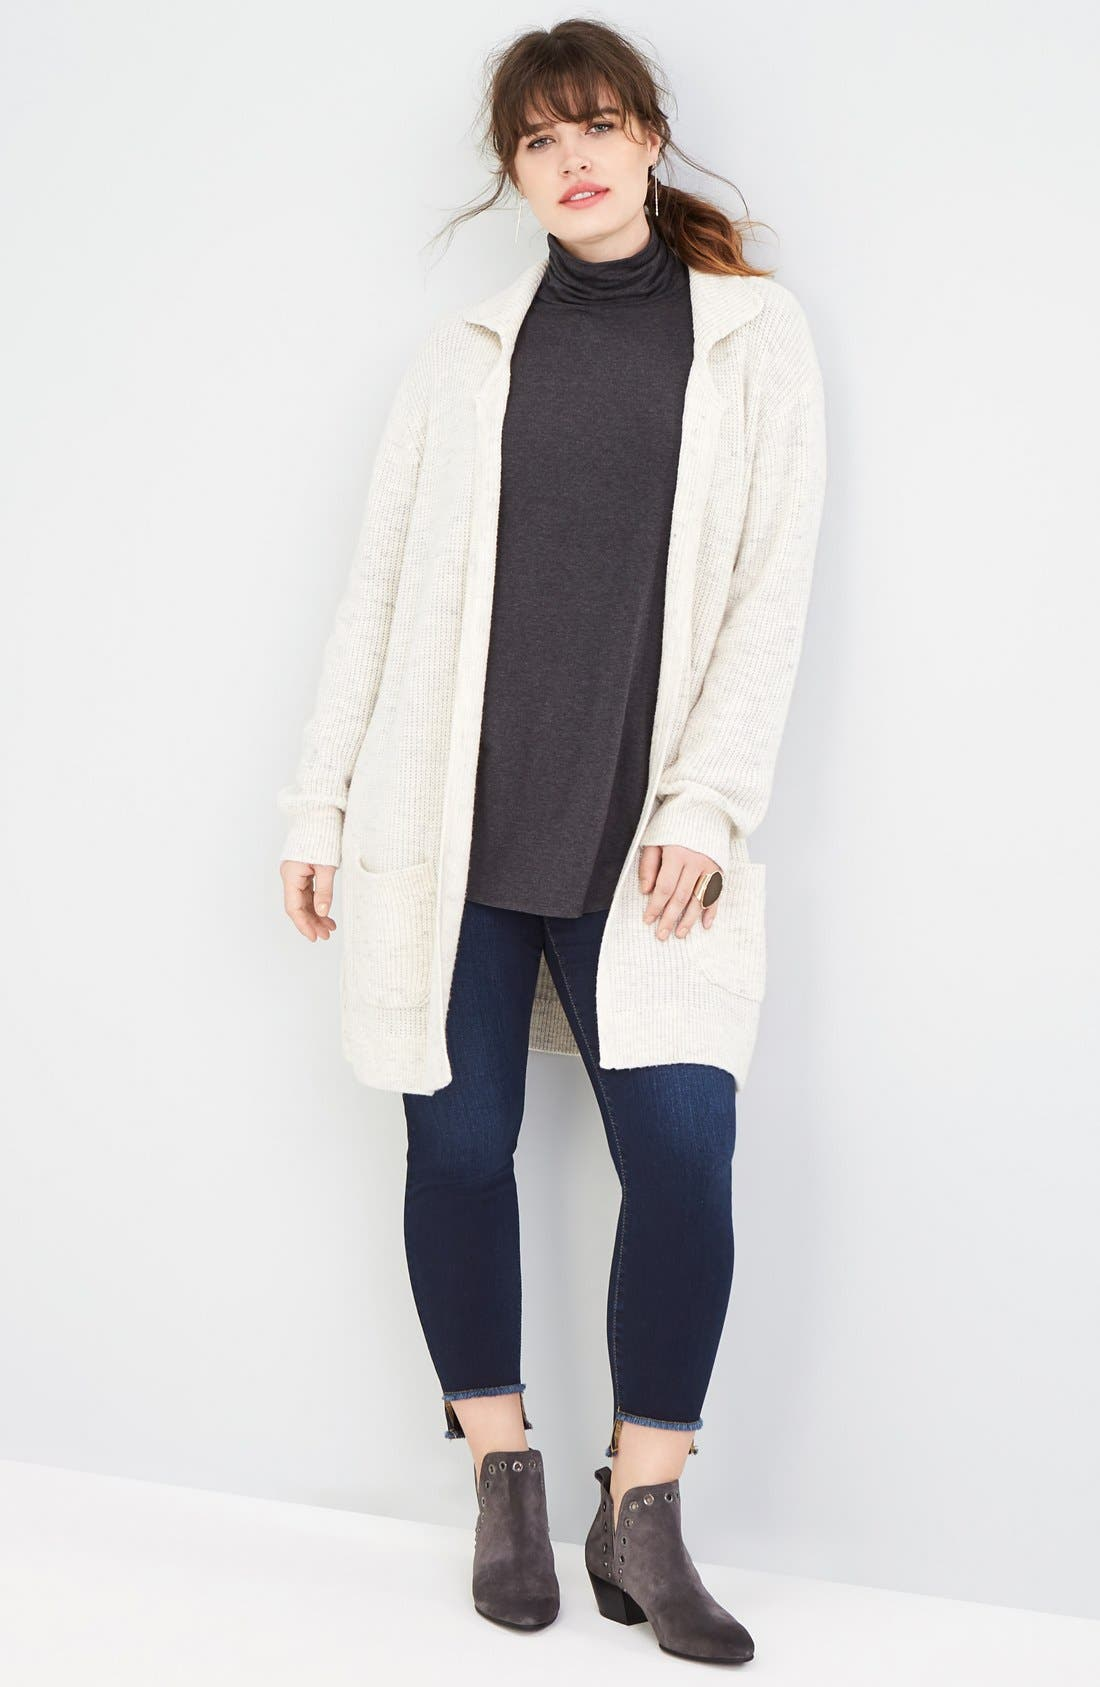 Sejour Jacket, Turtleneck & SLINK Jeans Stretch Jeans Outfit with Accessories (Plus Size)